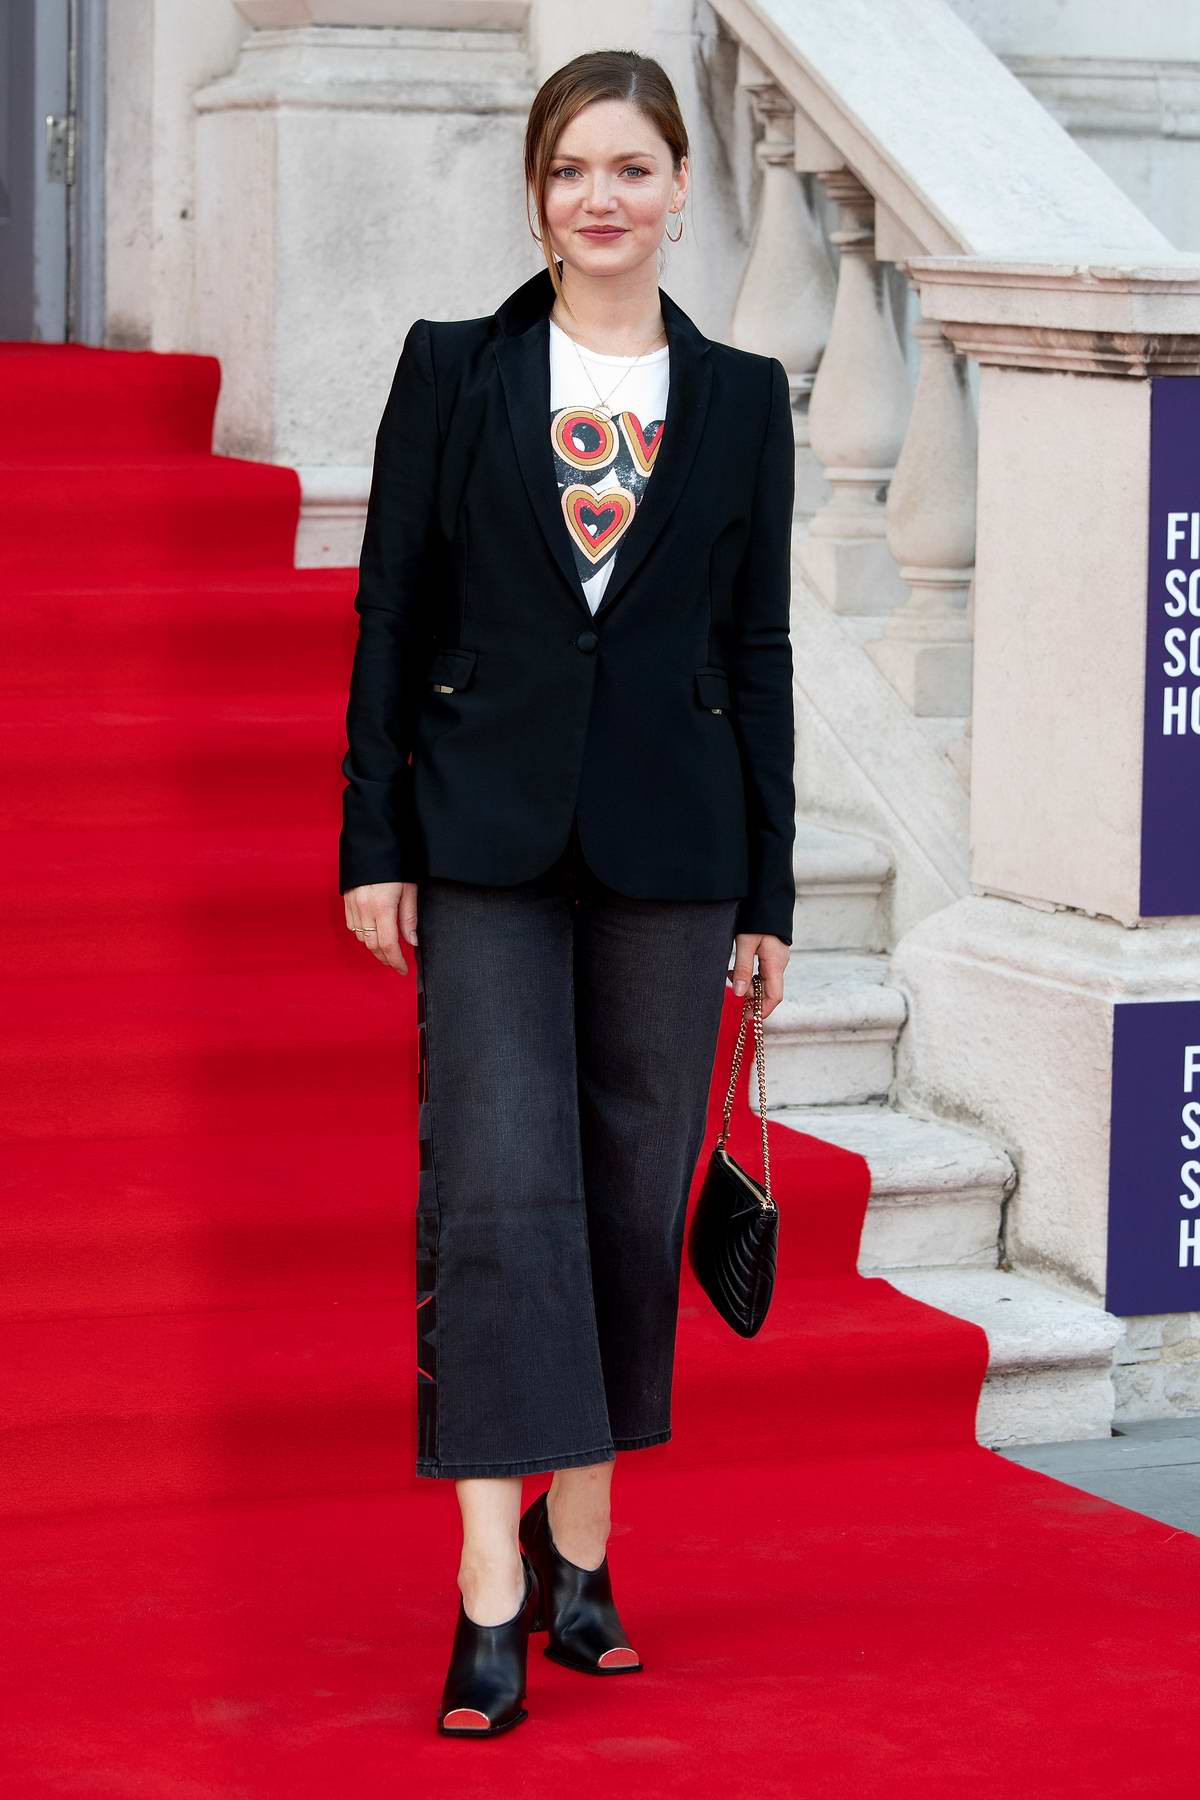 Holliday Grainger attends the premiere of 'Pain and Glory' at Somerset House in London, UK